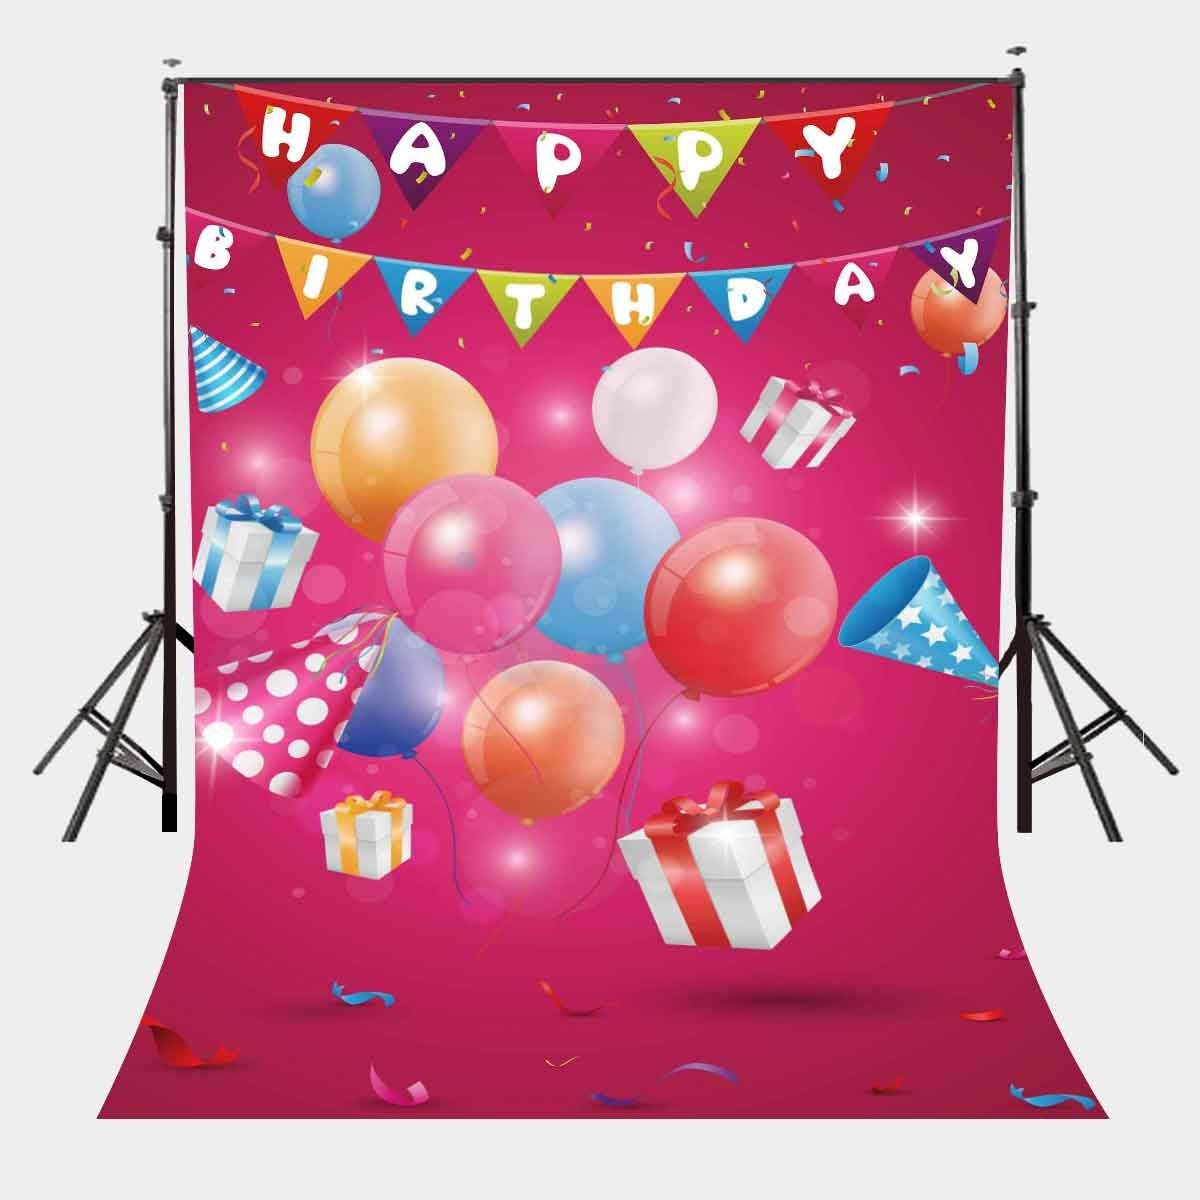 5x7ft Happy Red Gift Room Backdrop Colorful Balloons Colorful Flags Photography Background Birthday Party